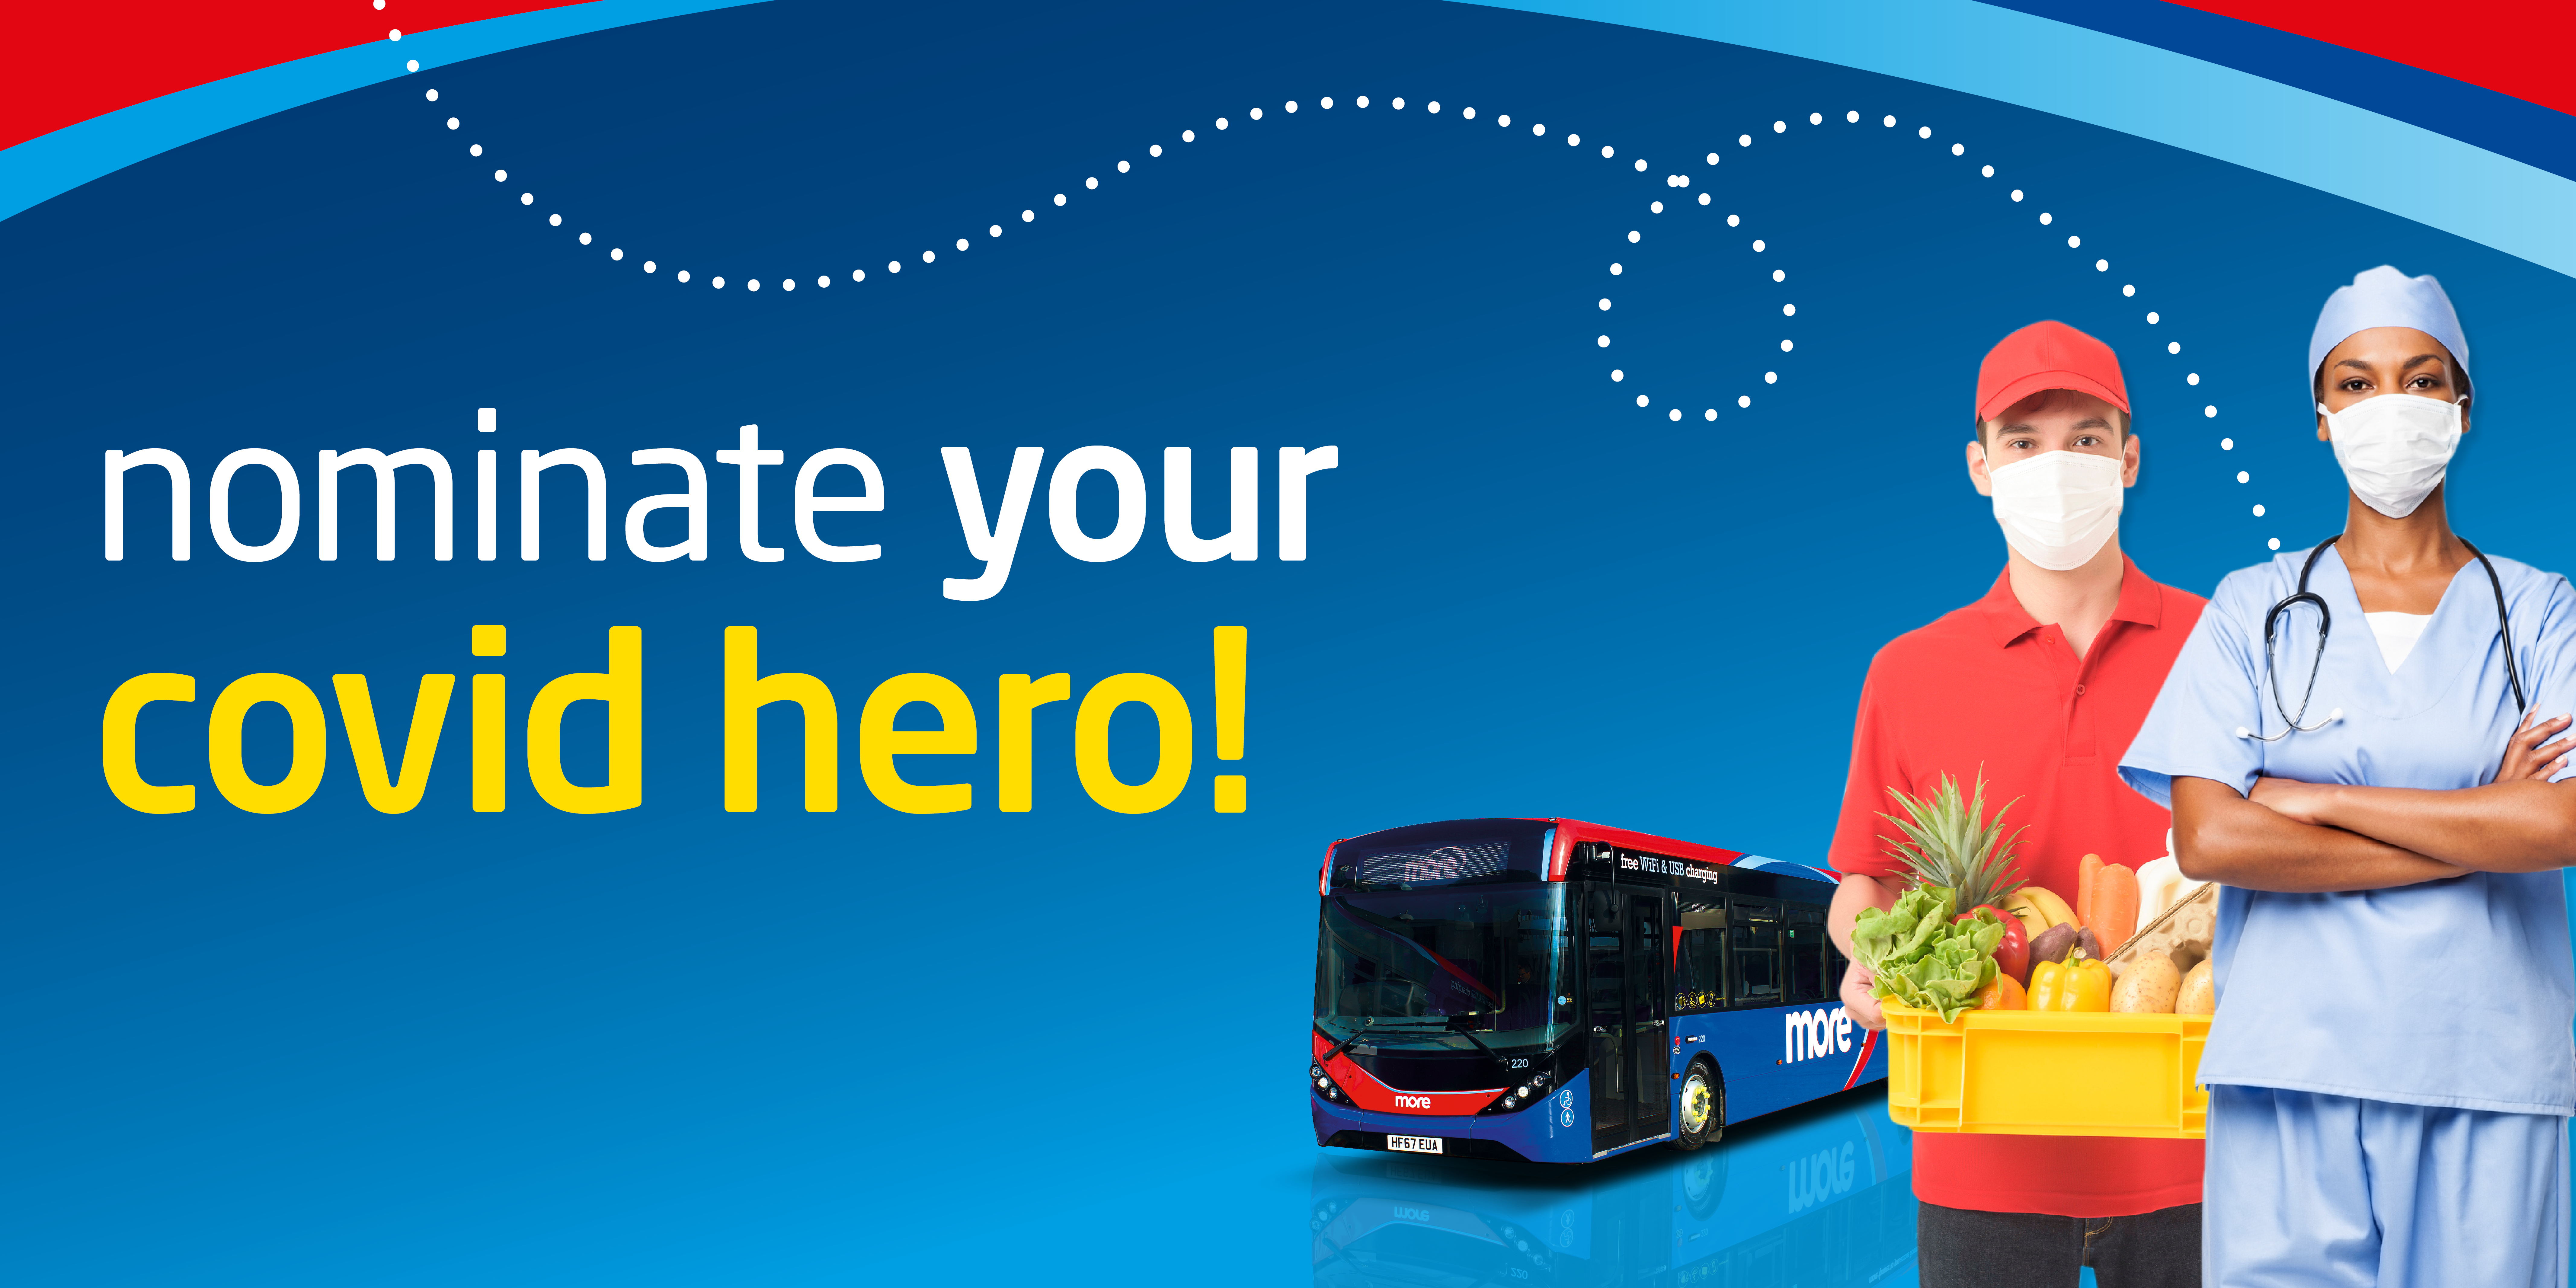 Image of a morebus with a nurse and food delivery personnel with text reading, 'nominate your covid hero!'